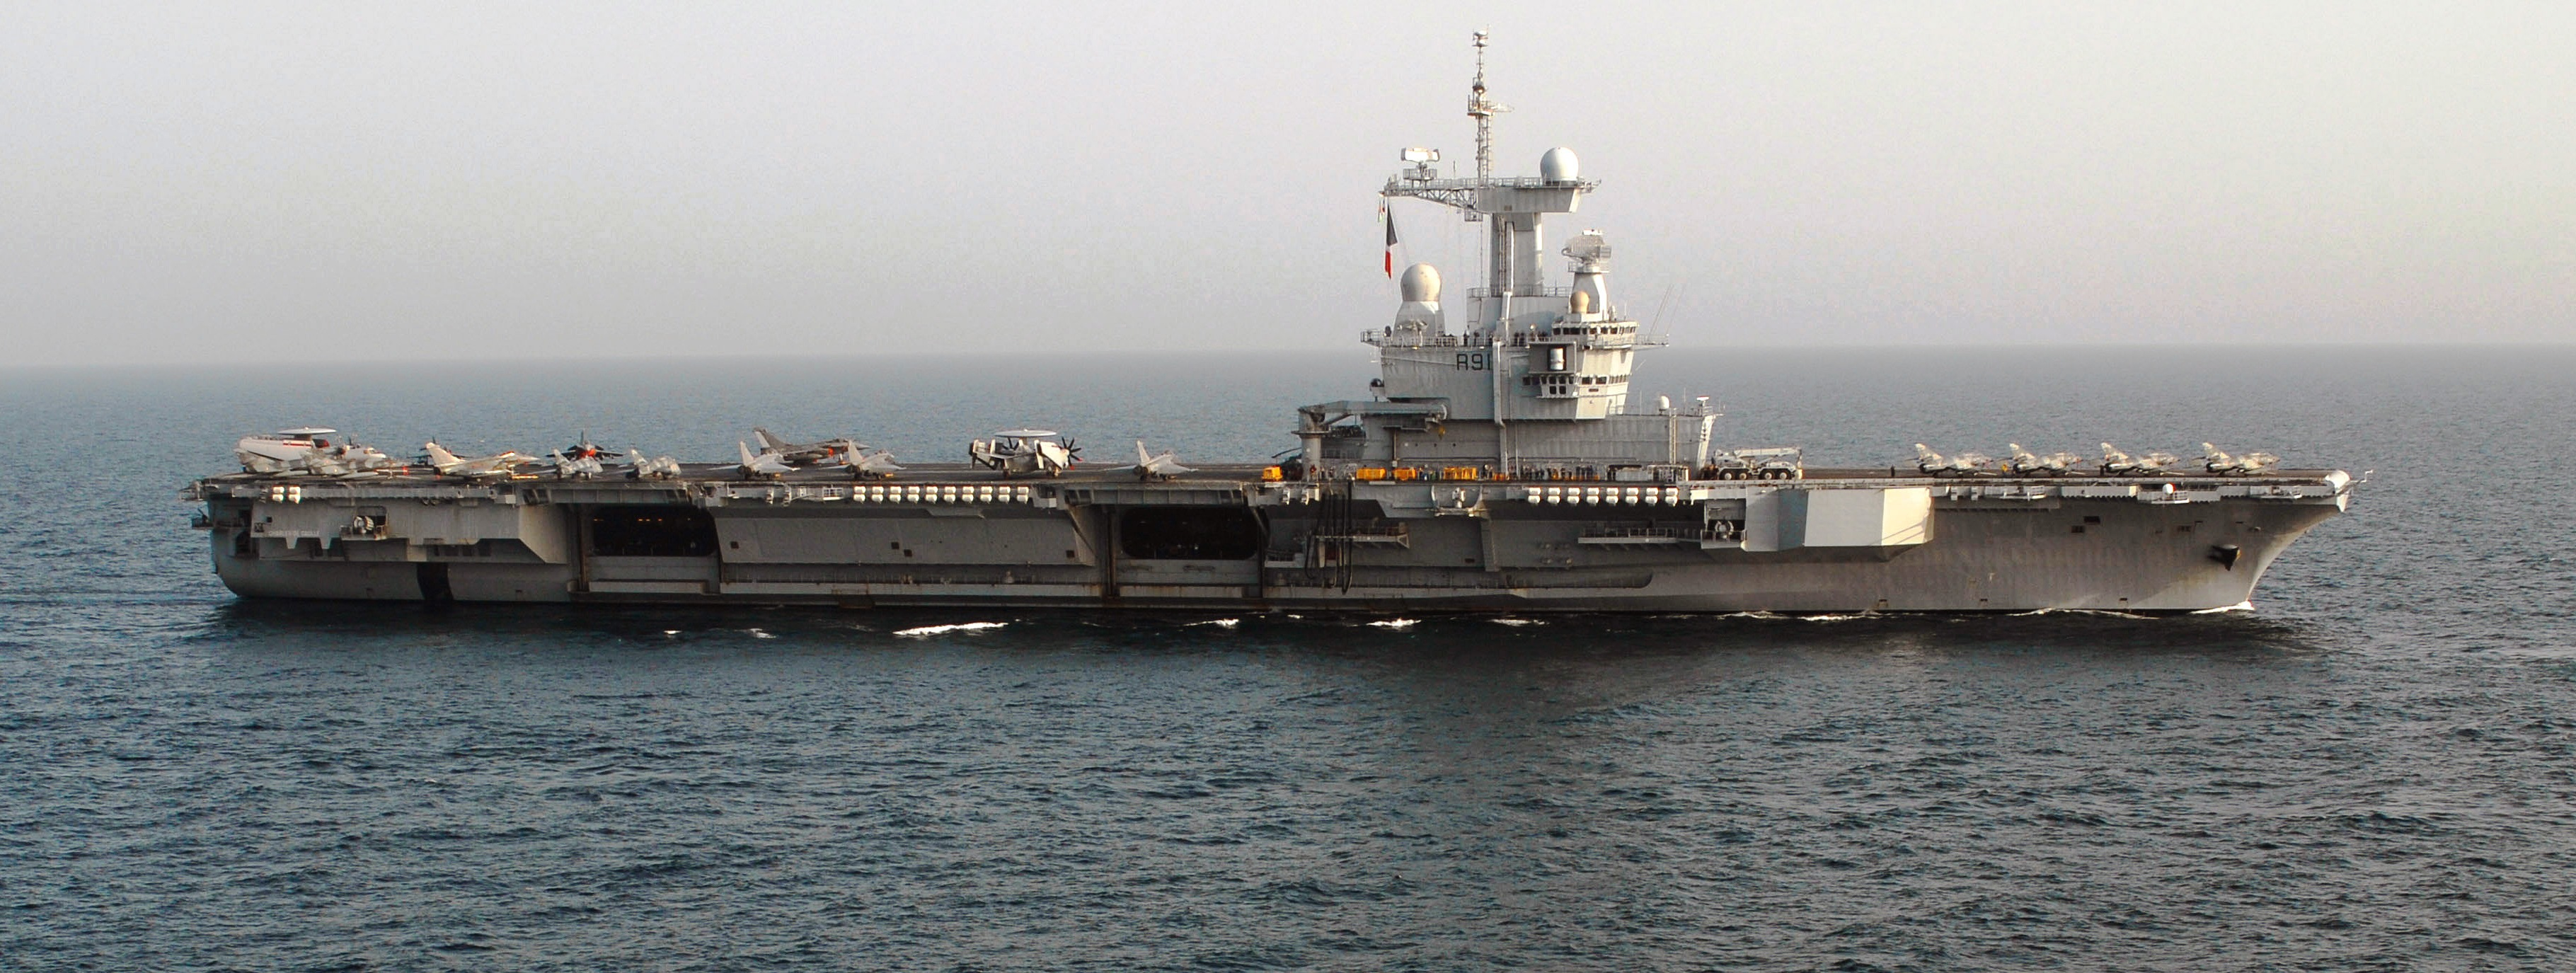 The carrier Charles de Gaulle of the French Navy took to the sea at the end of medium repair and modernization 99